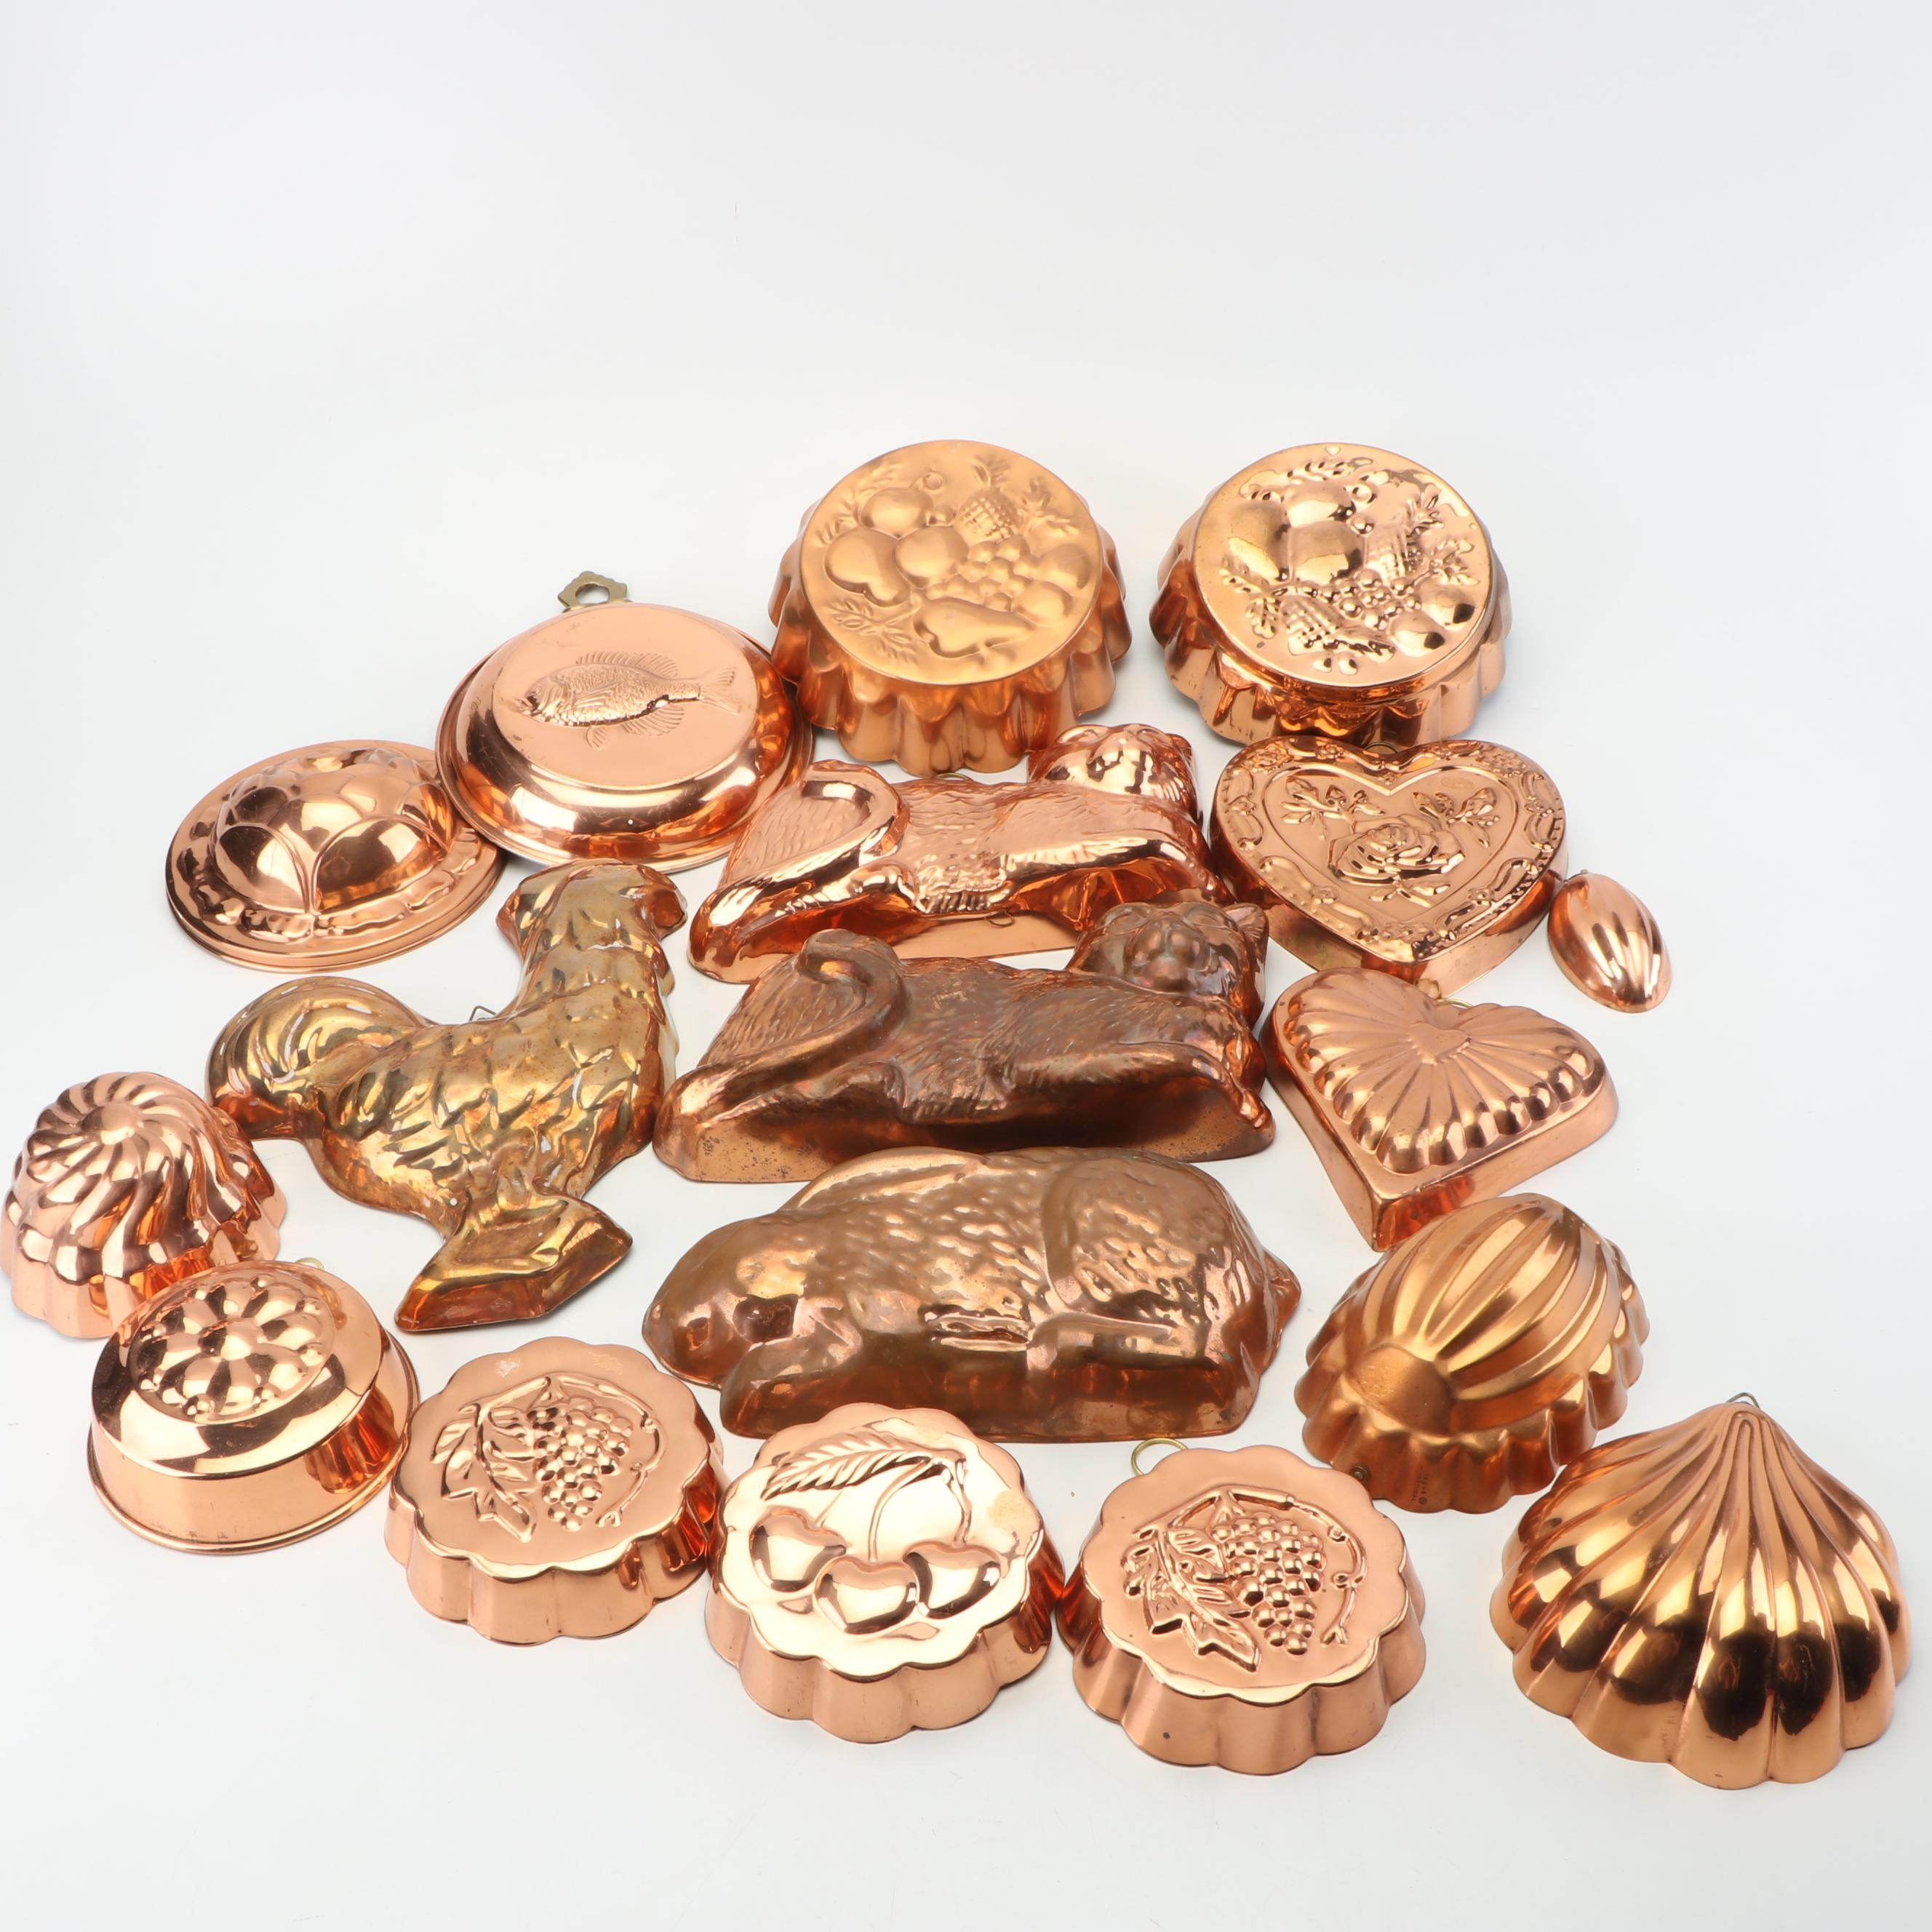 Copper Molds and Pans